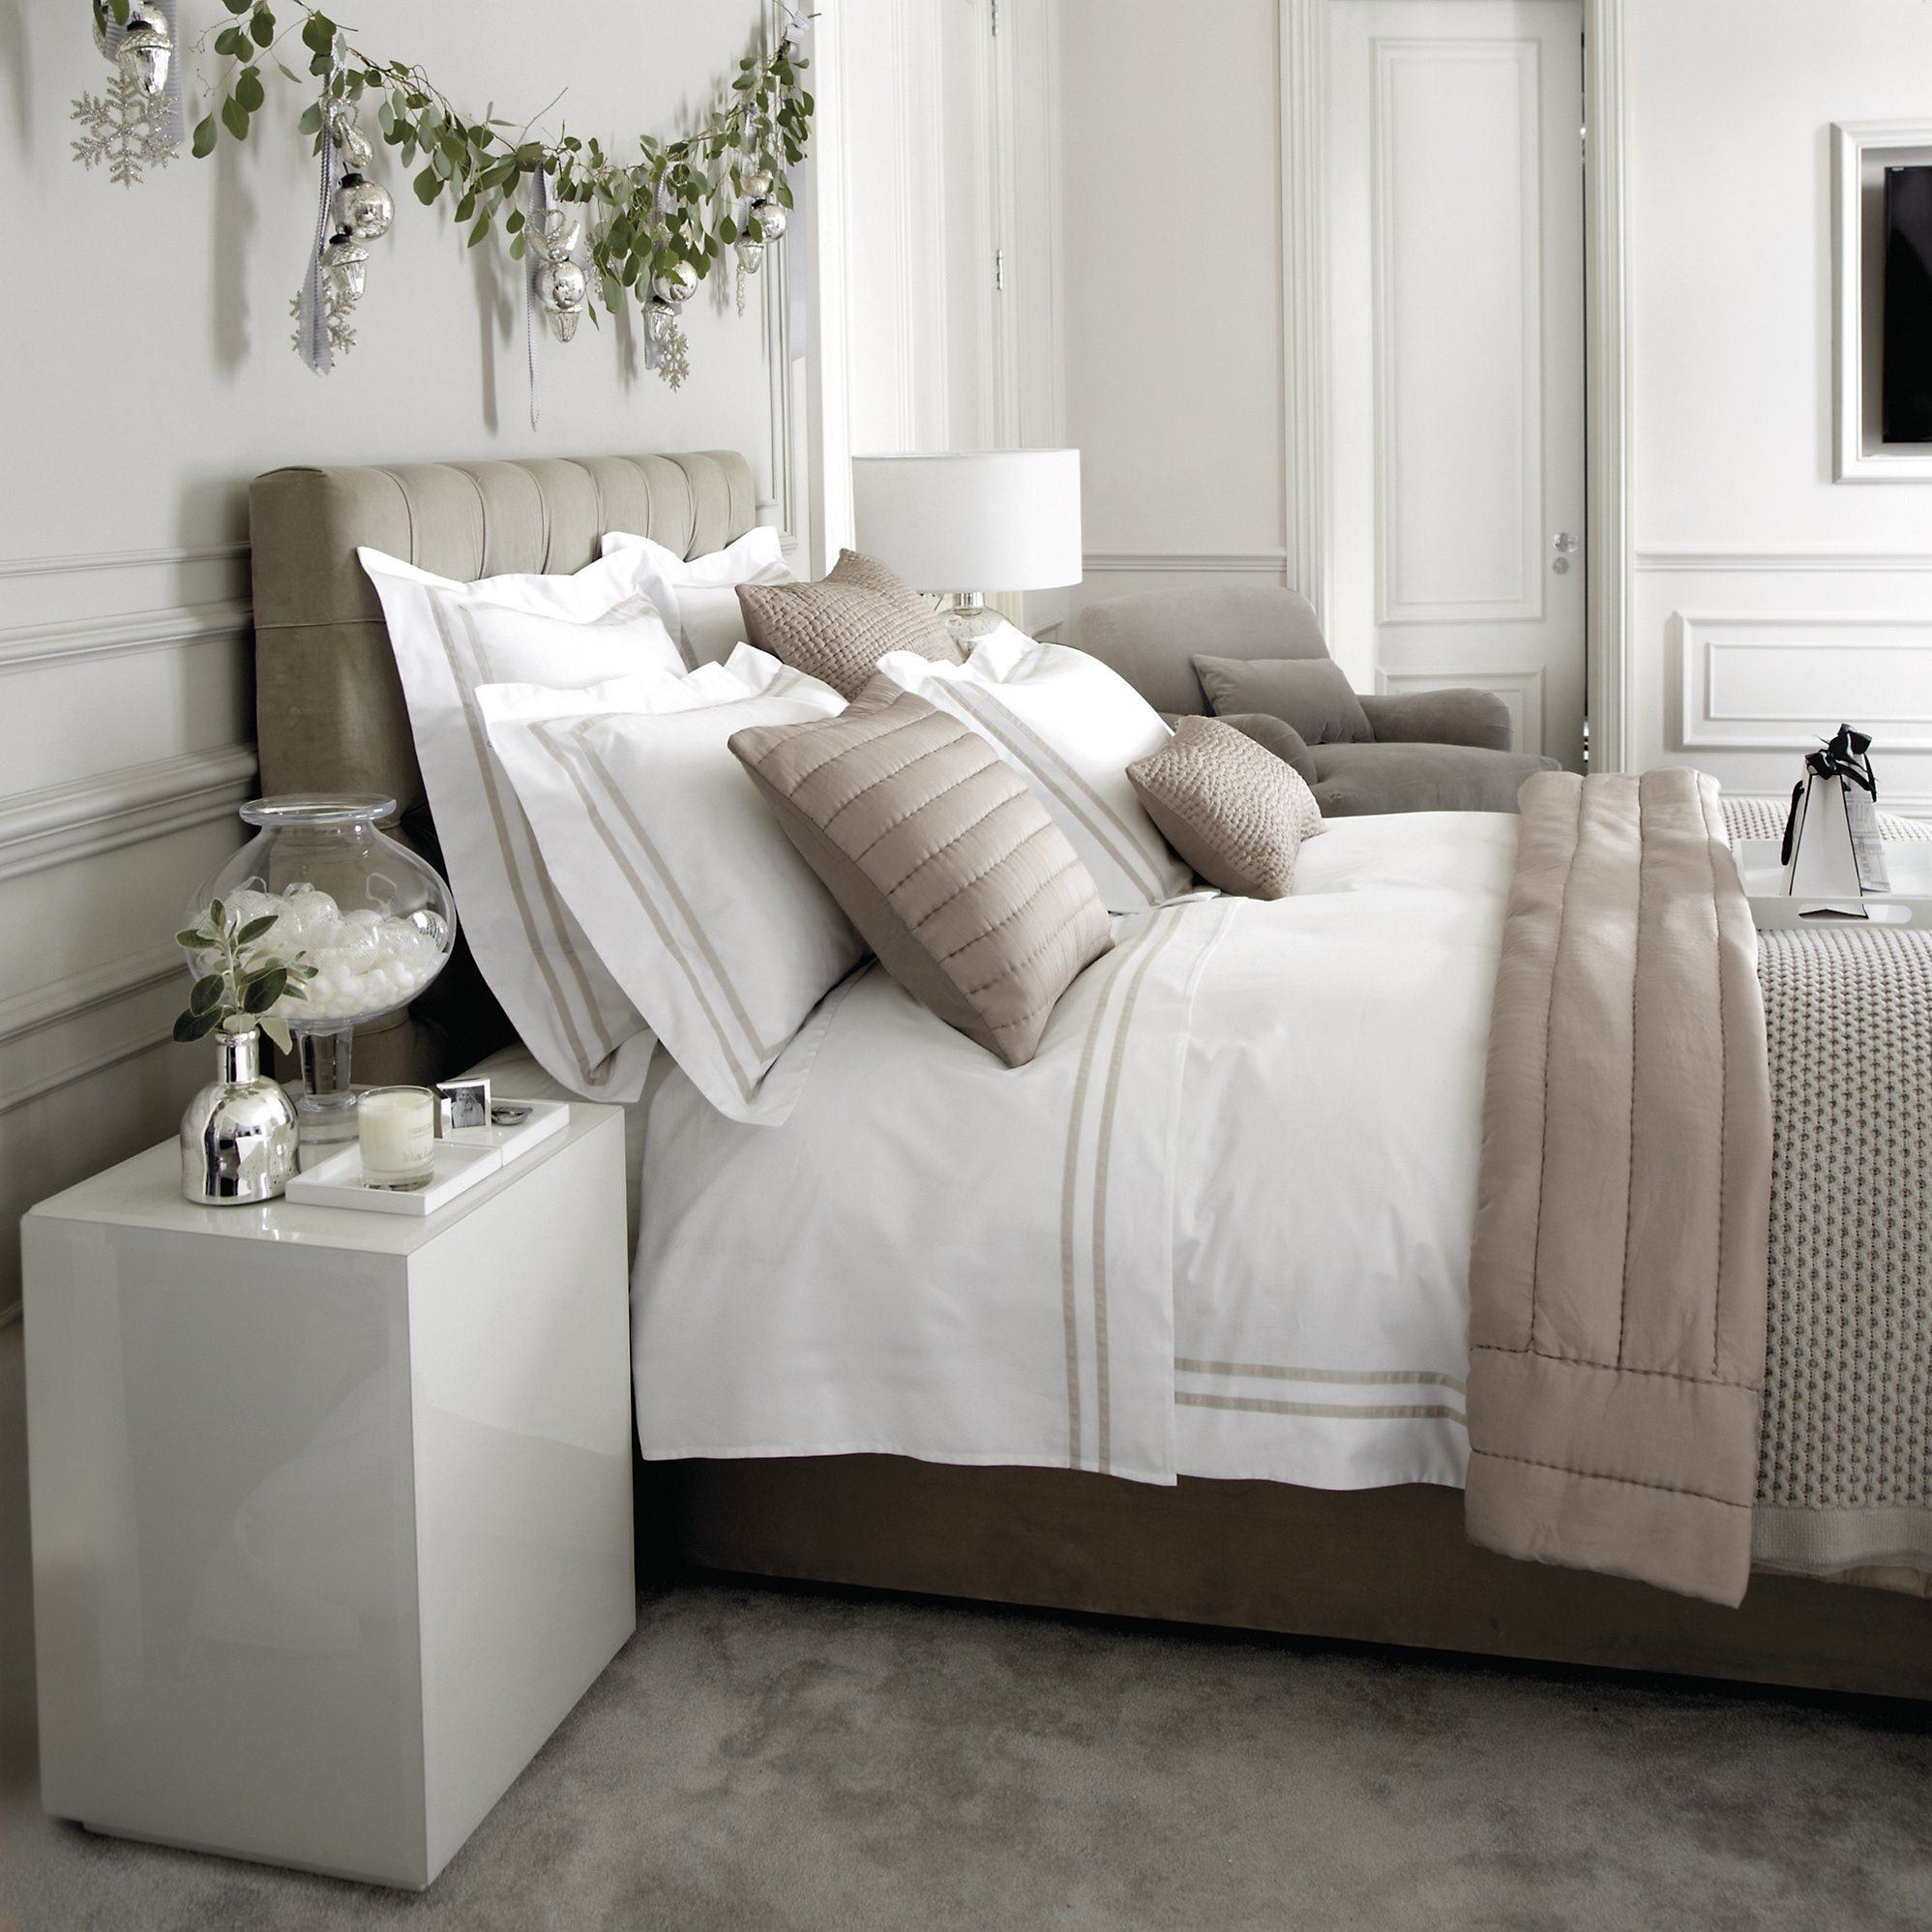 5 Bedroom Ideas For Autumn From The White Company: Charlton Bed Linen Collection - Natural